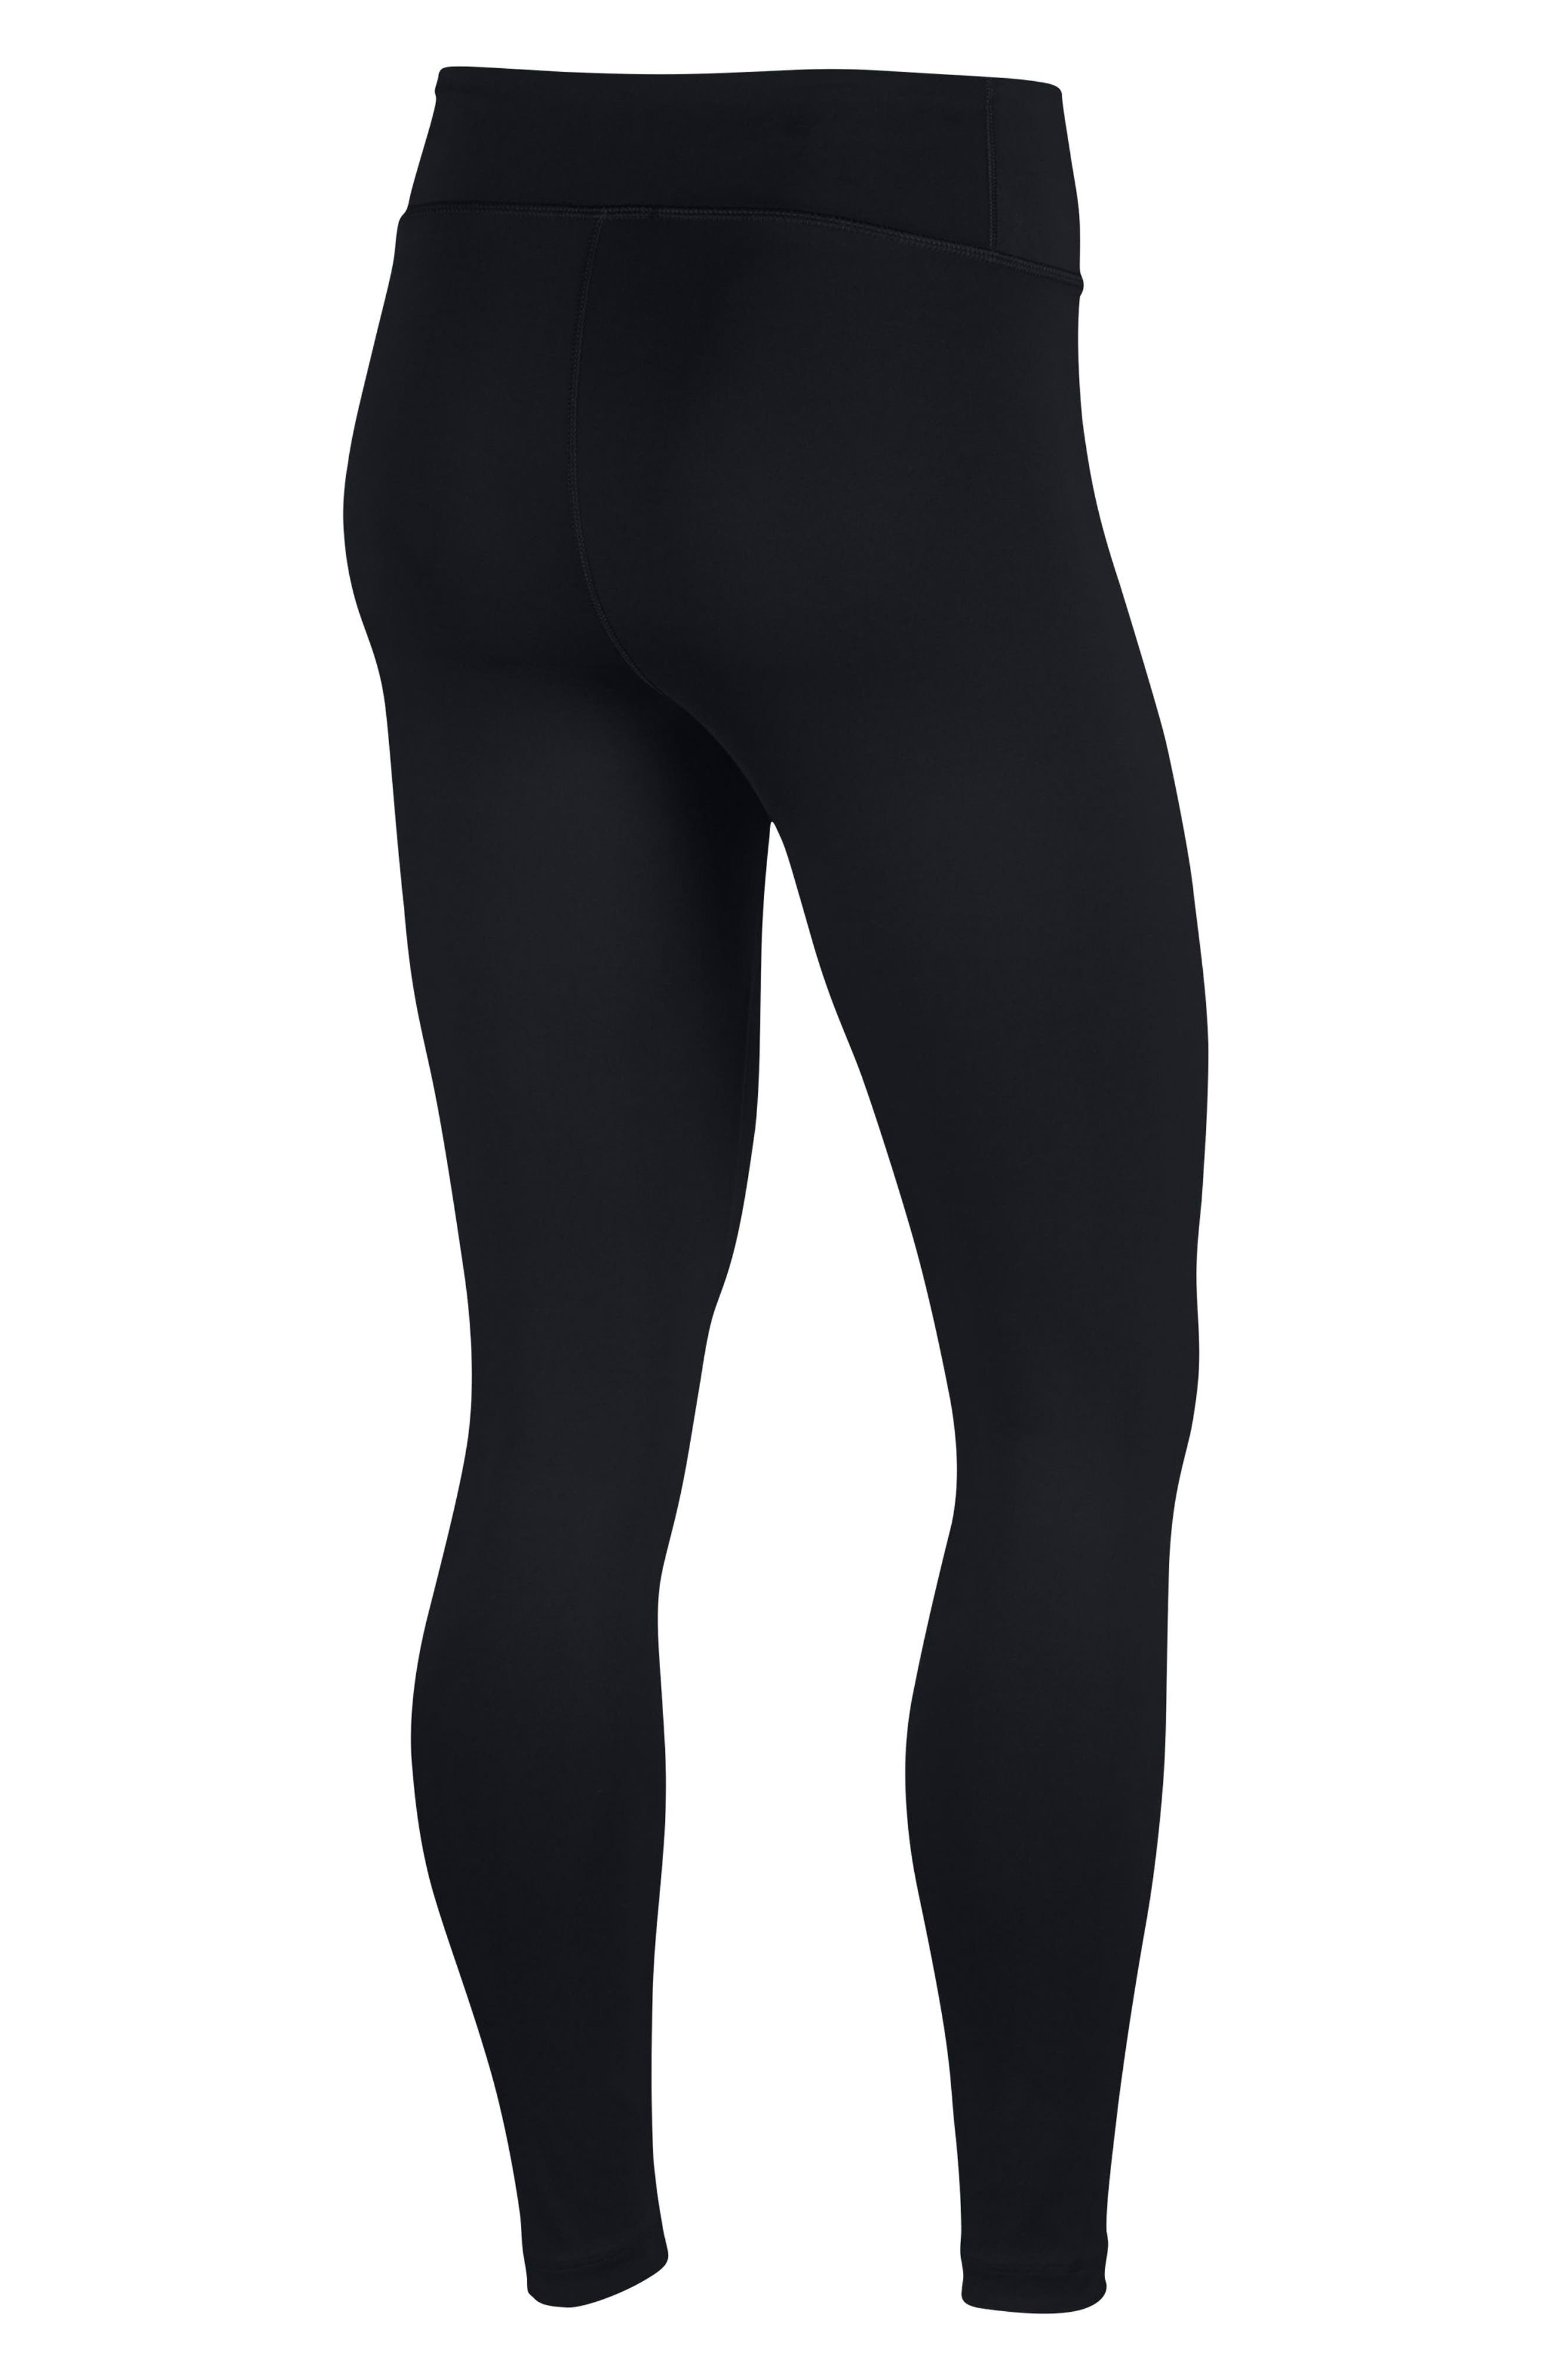 Power Tights,                             Alternate thumbnail 2, color,                             011